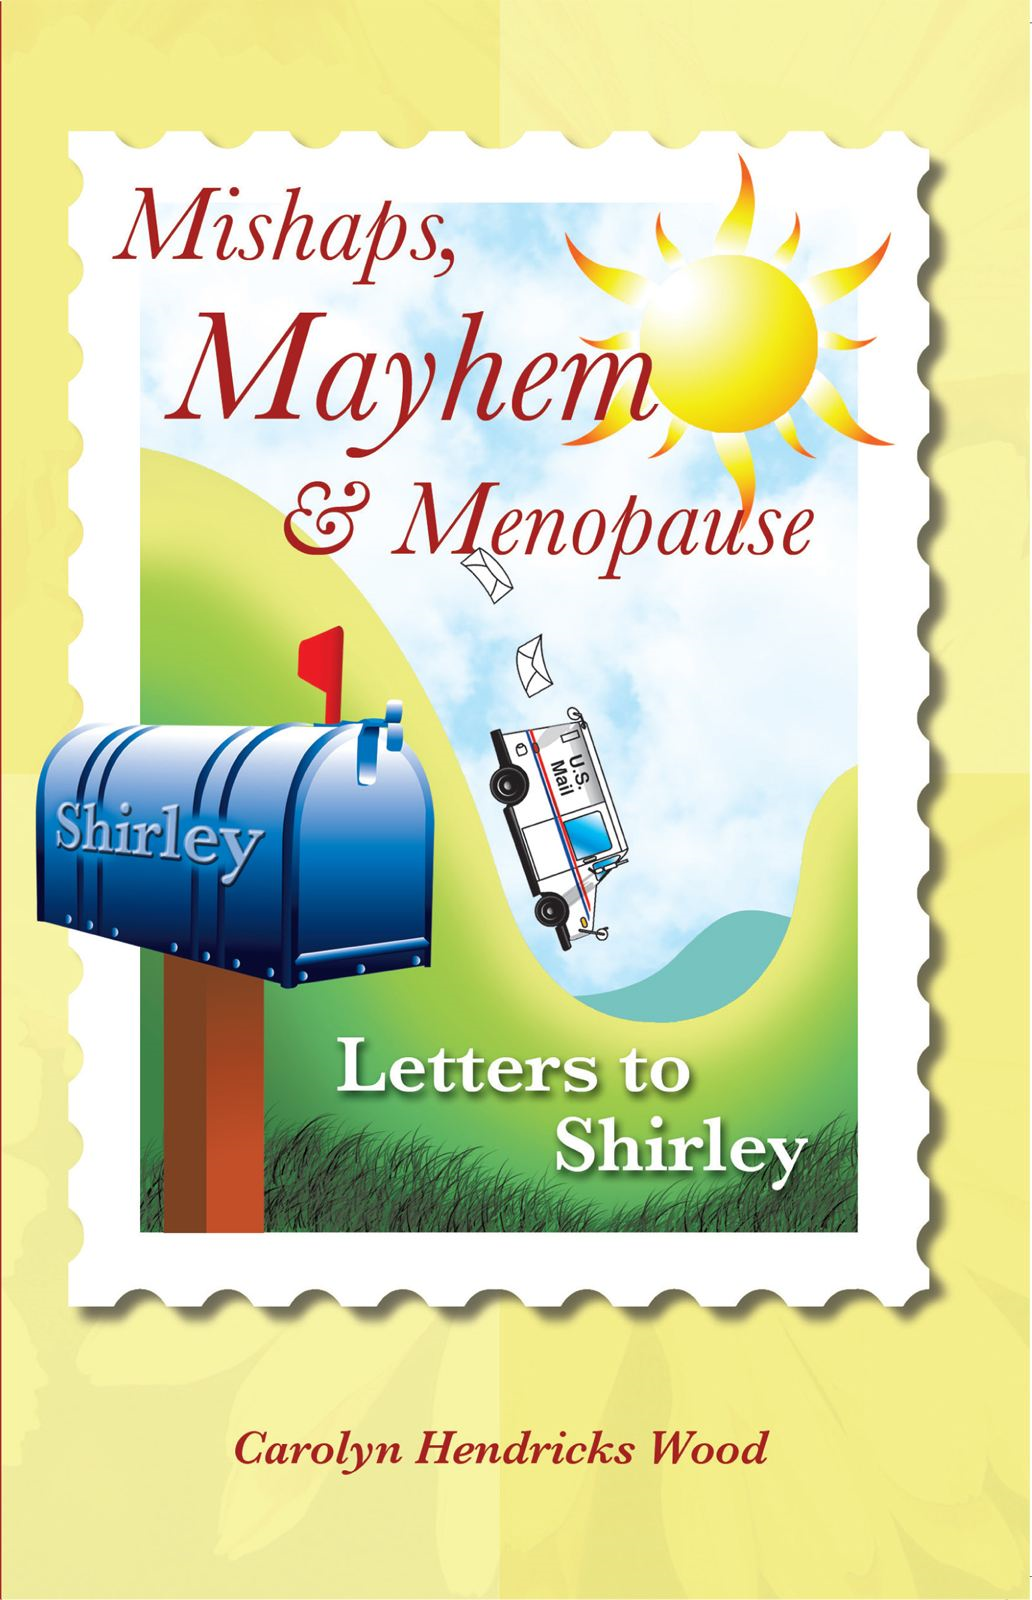 Mishaps, Mayhem, & Menopause By: Carolyn Hendricks Wood